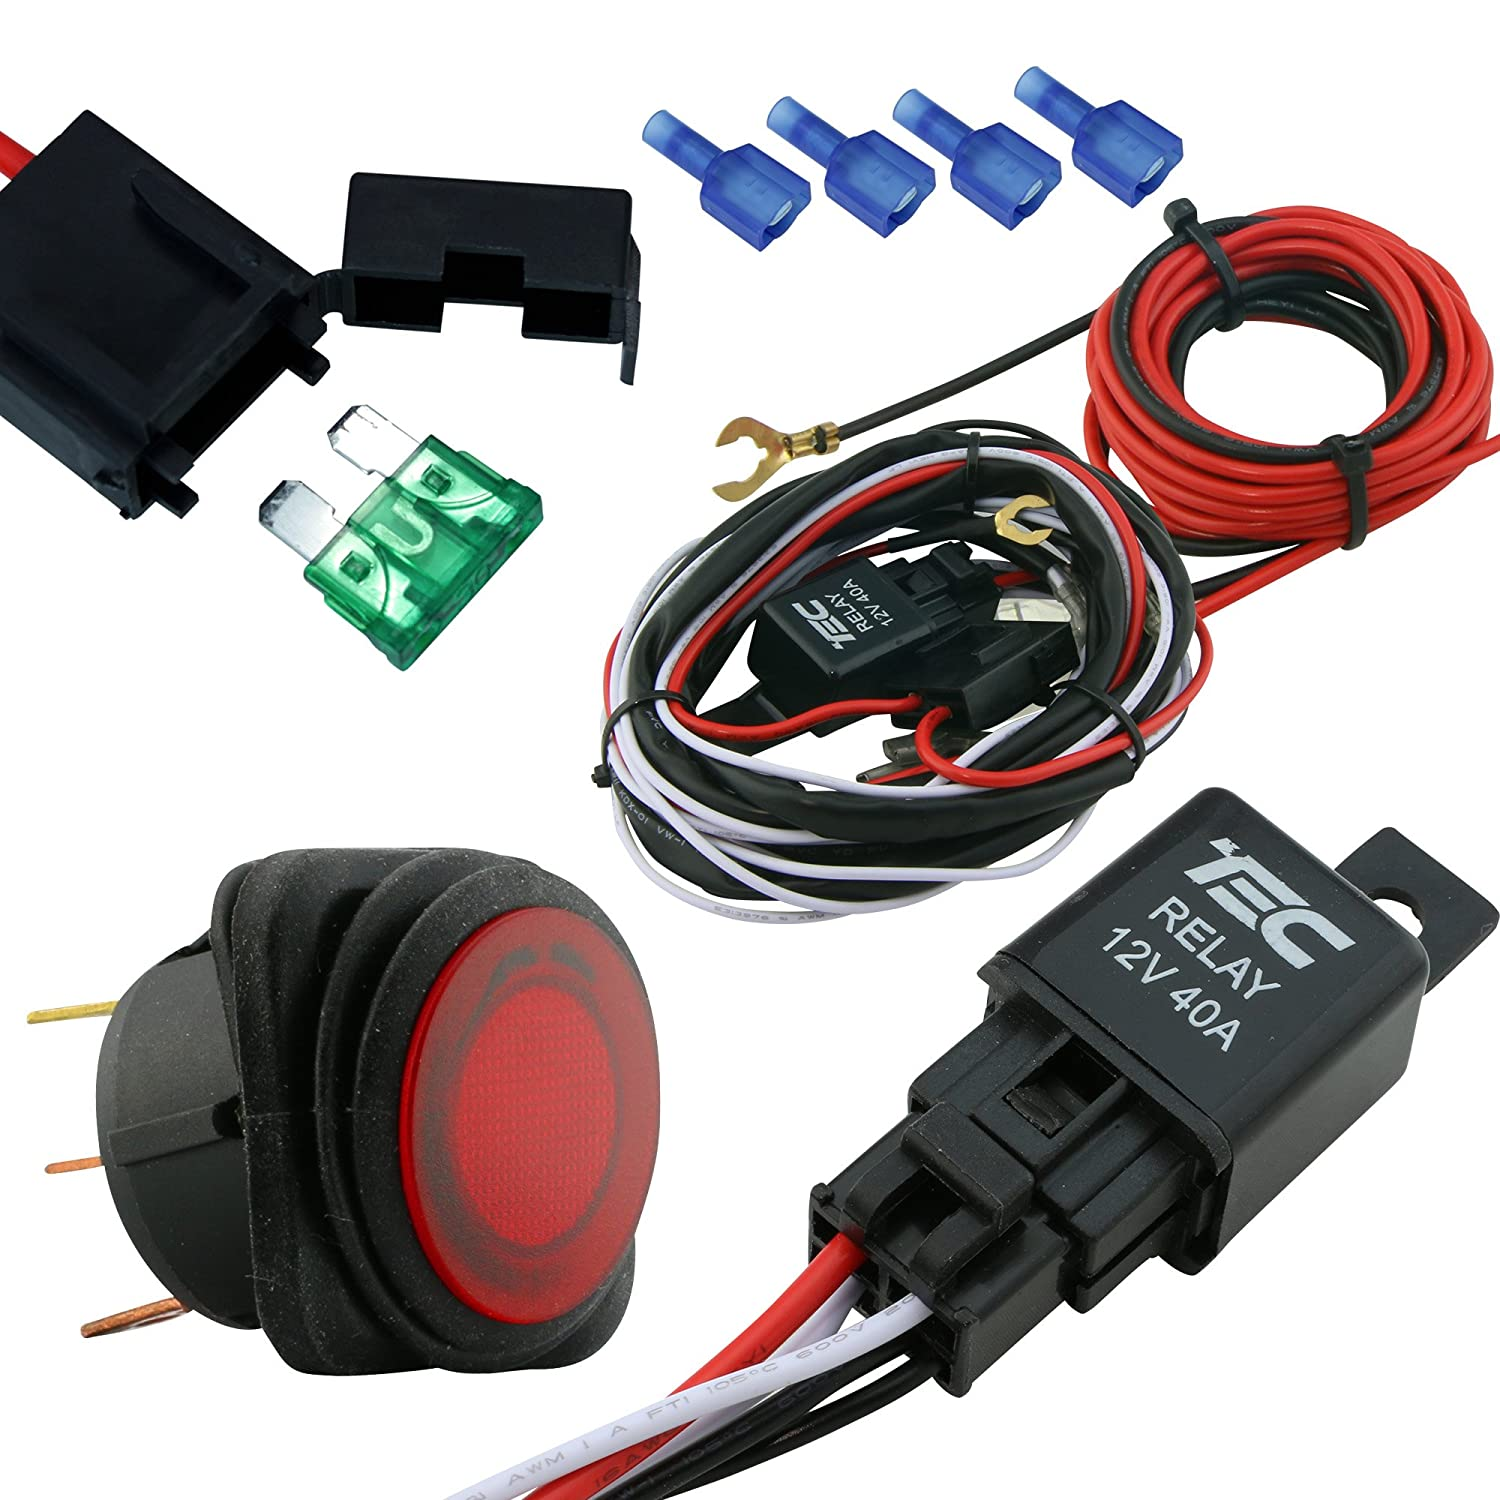 lamphus cruizer off road atv/jeep led light bar wiring harness - 40 amp  relay on/off switch